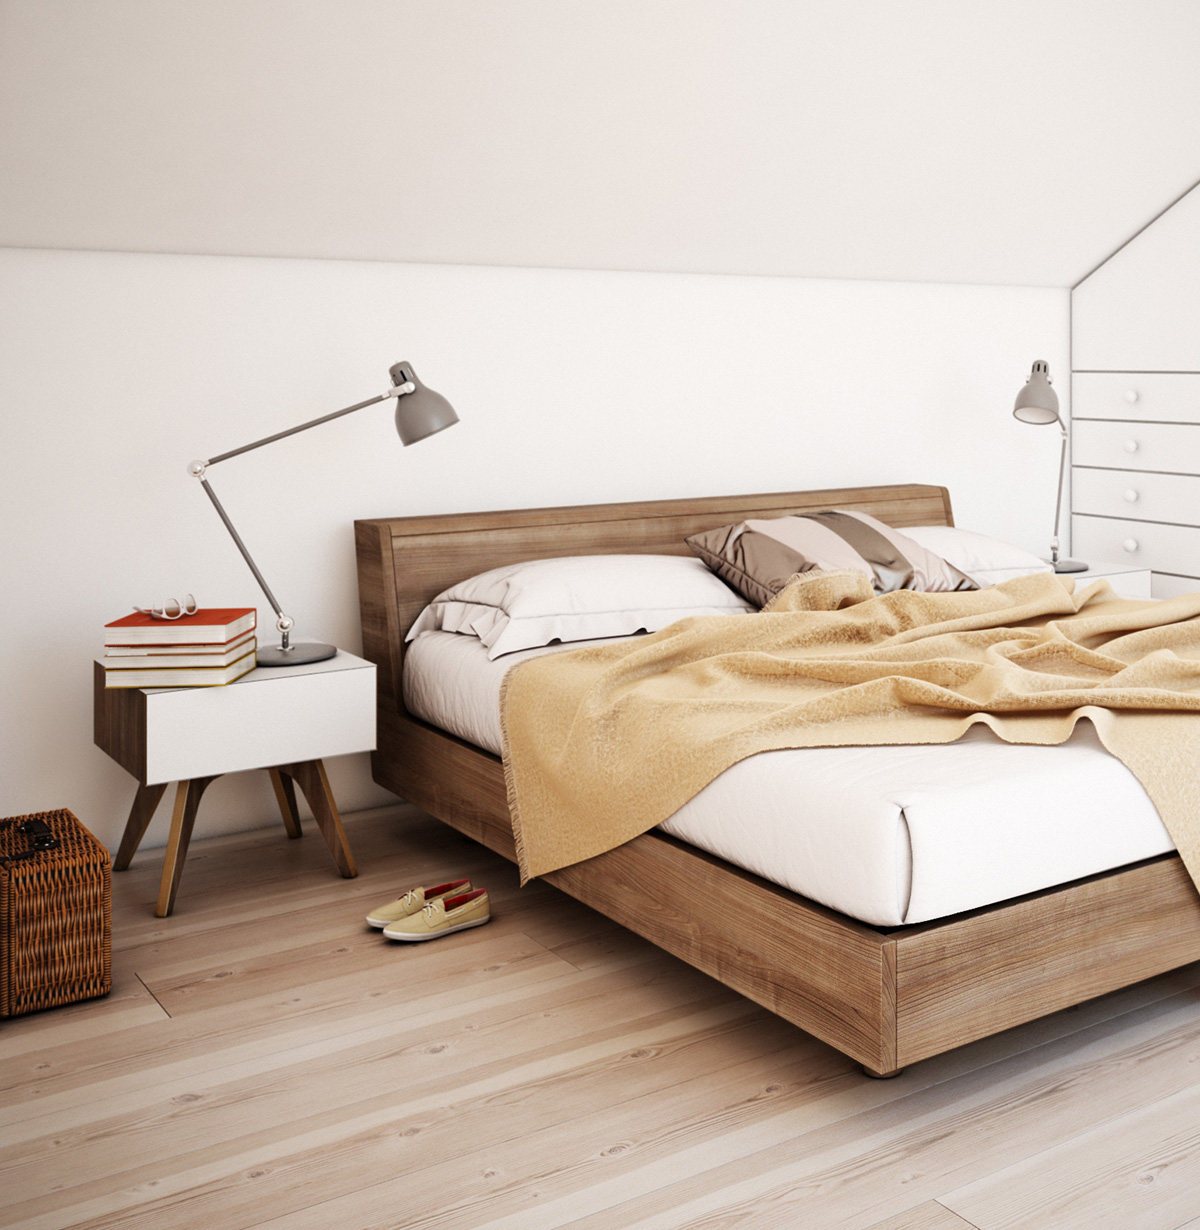 Wood And White Bedroom Design - 7 bedroom designs to inspire your next favorite style